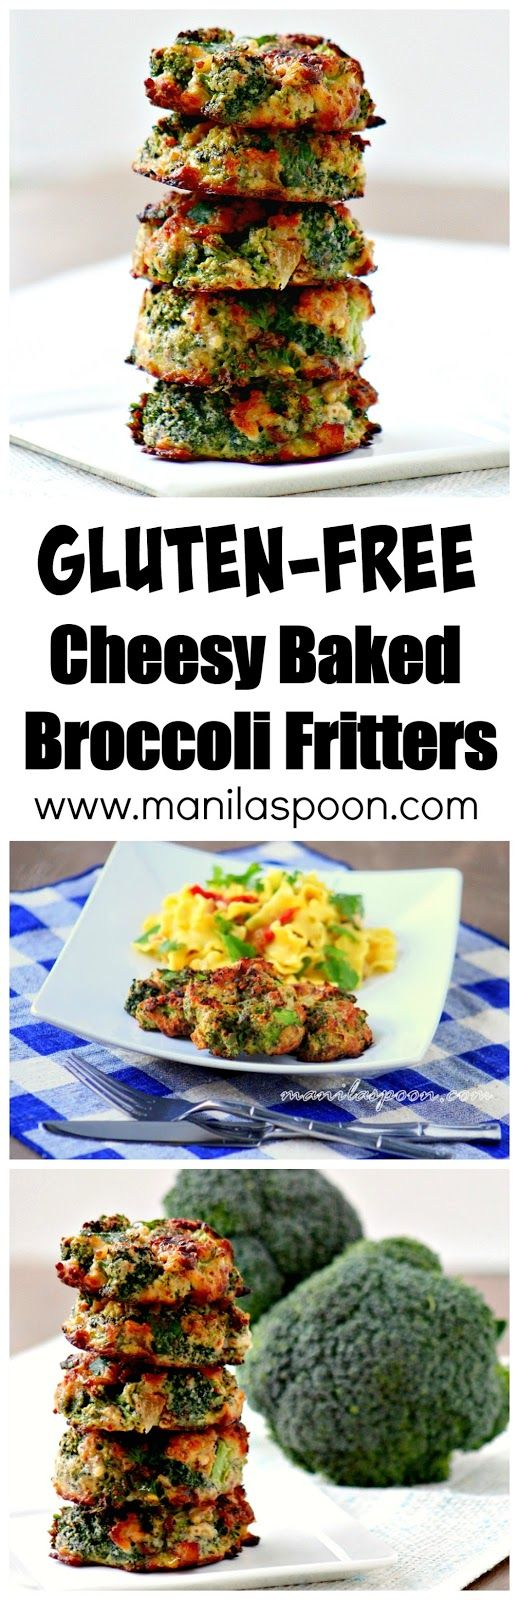 Crunchy, healthy, low-carb and completely gluten-free are these Cheesy Baked Broccoli Fritters! Delicious appetizers for any party and certainly for Game Day!